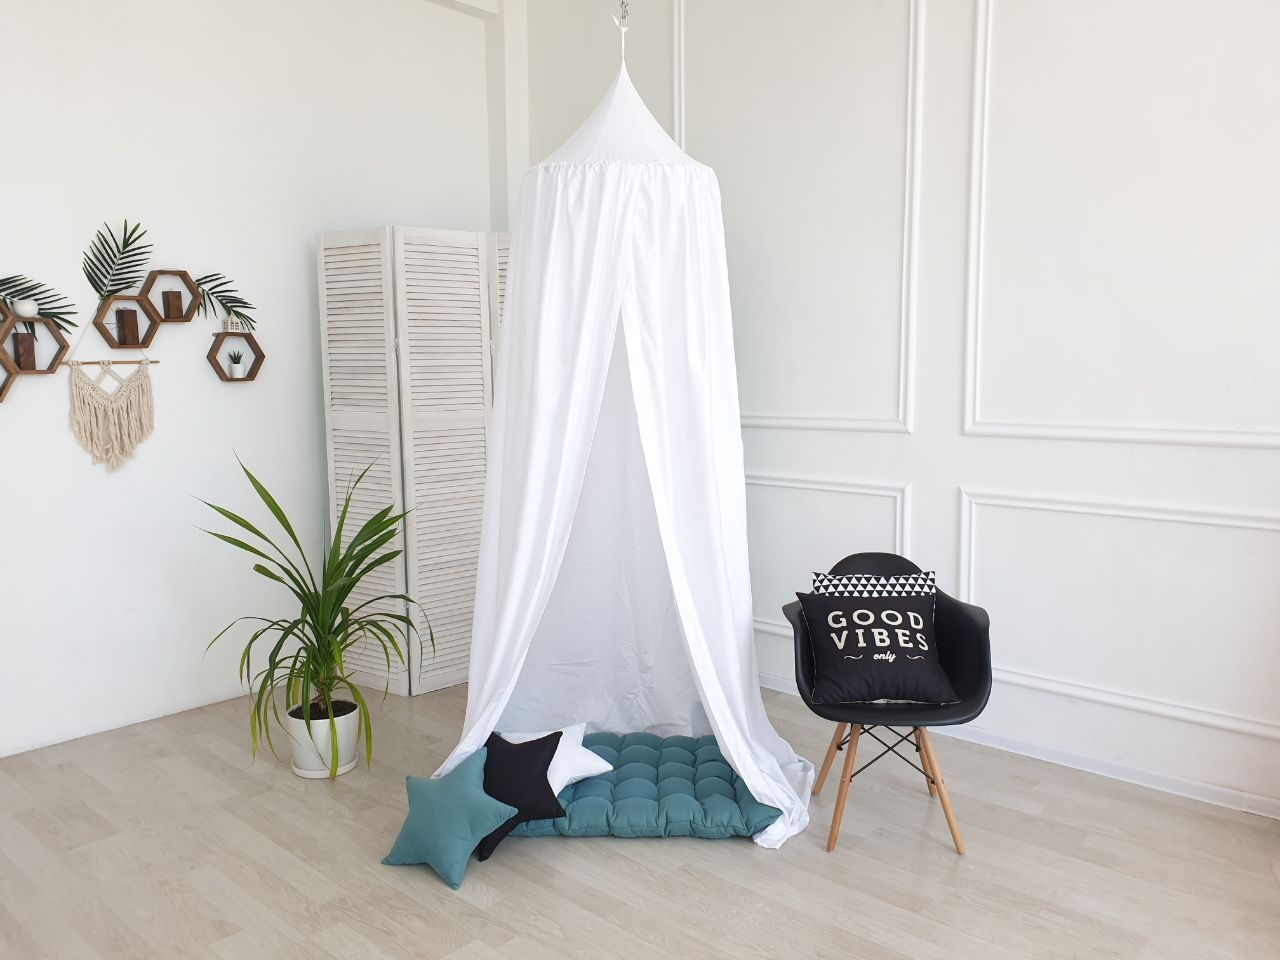 White Canopy Nursery Canopy Mint Color Canopy Canopy With Mat Cozy Nursery Canopy Baldachin Canopy Princess Playhouse White Canopy Baby Room Neutral Baby Room Decor